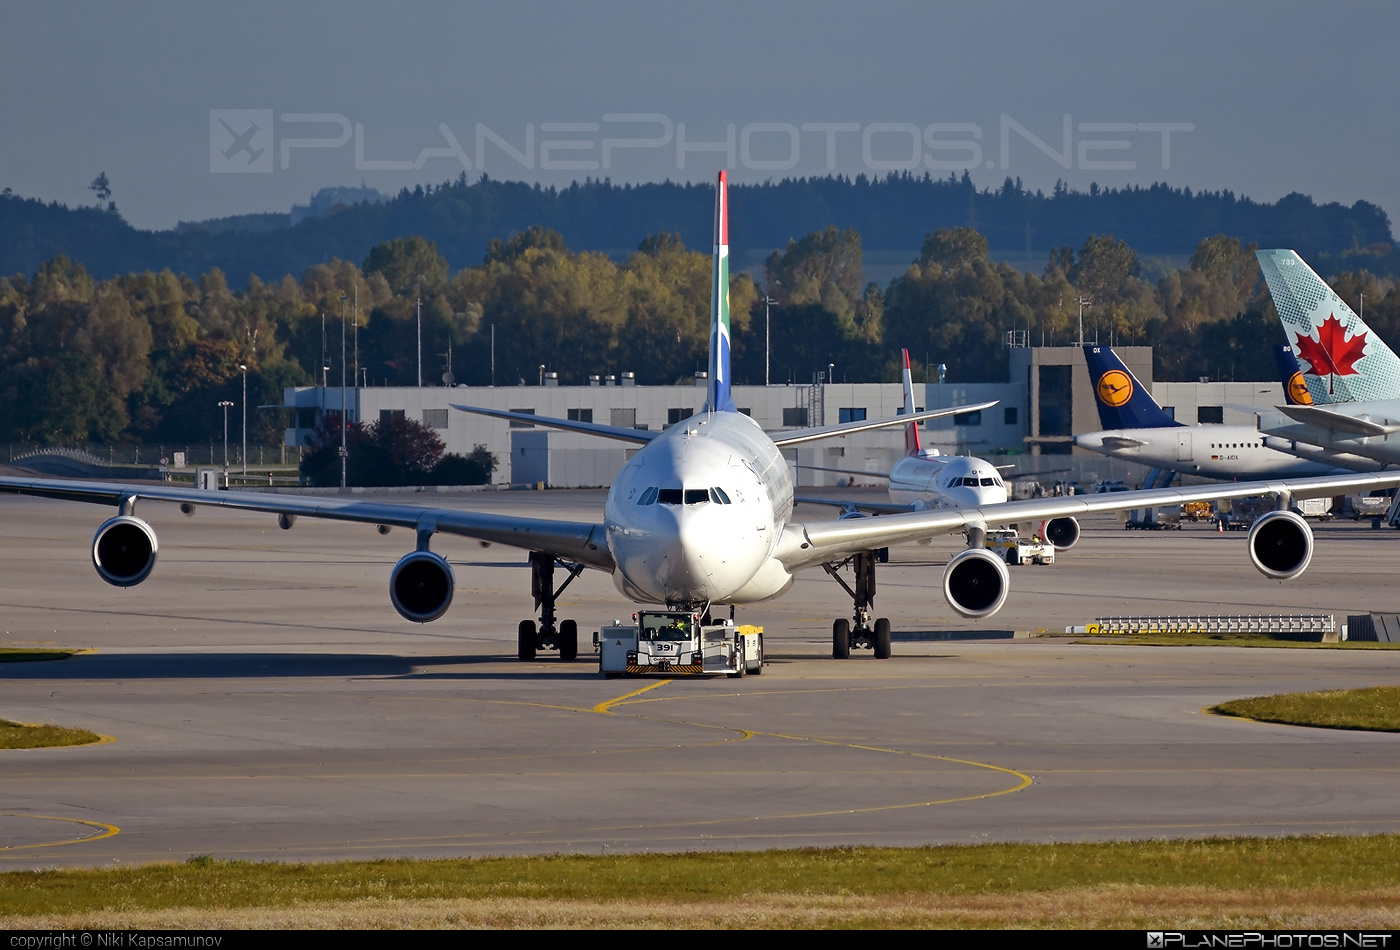 Airbus A340-313E - ZS-SXA operated by South African Airways #a340 #a340family #airbus #airbus340